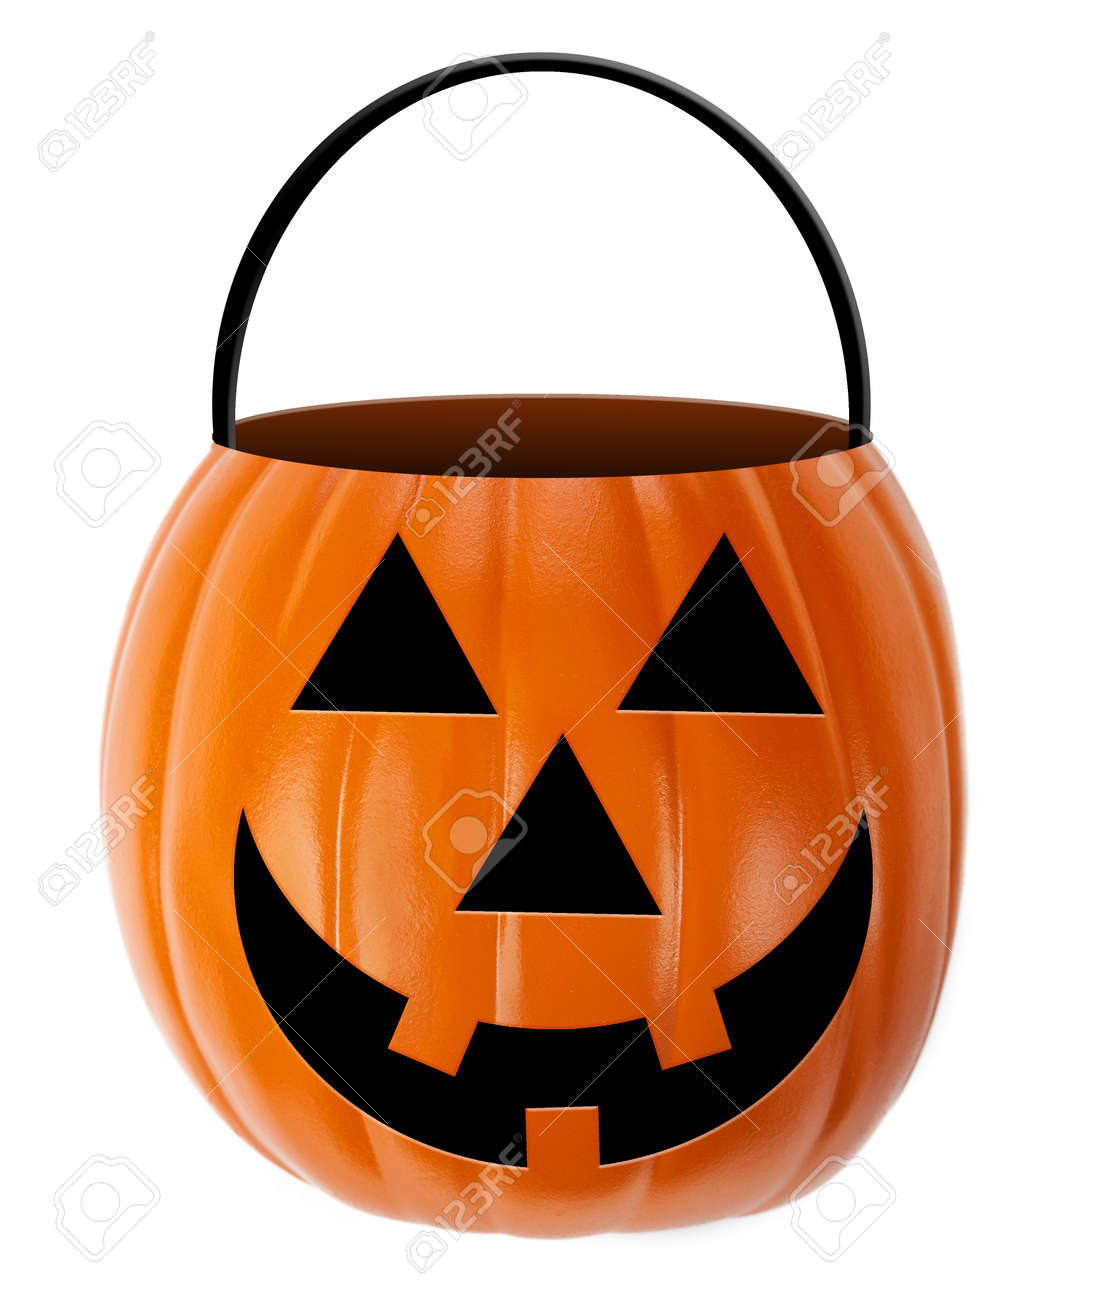 halloween jack-o-lantern candy holder stock photo, picture and